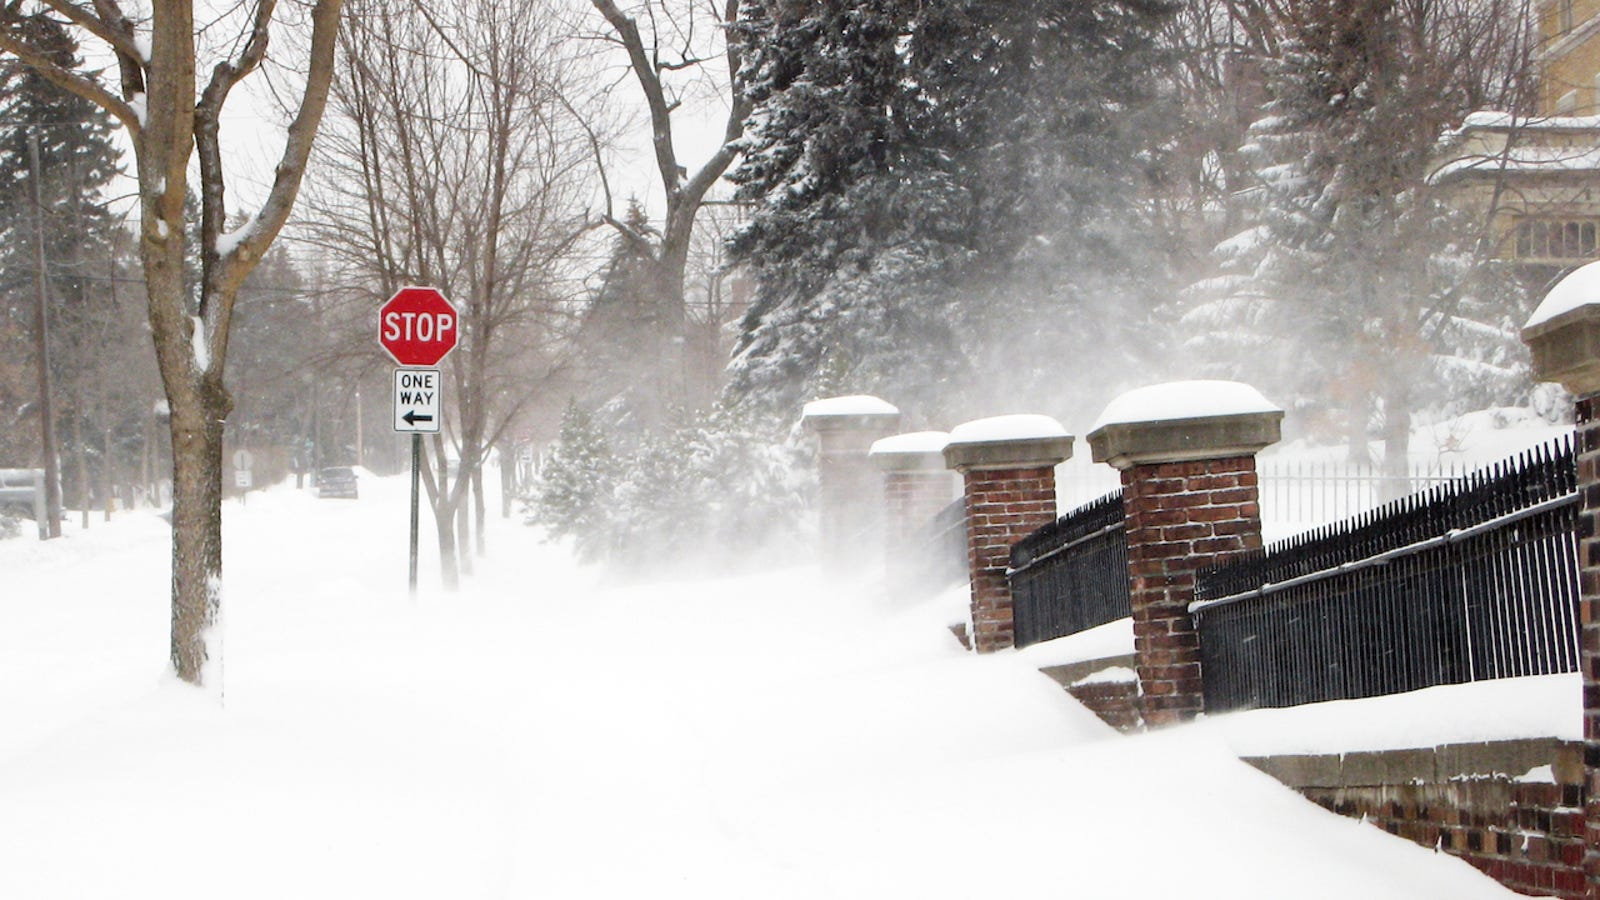 foto Blizzard Preparedness: Food Safety in Extreme Winter Weather